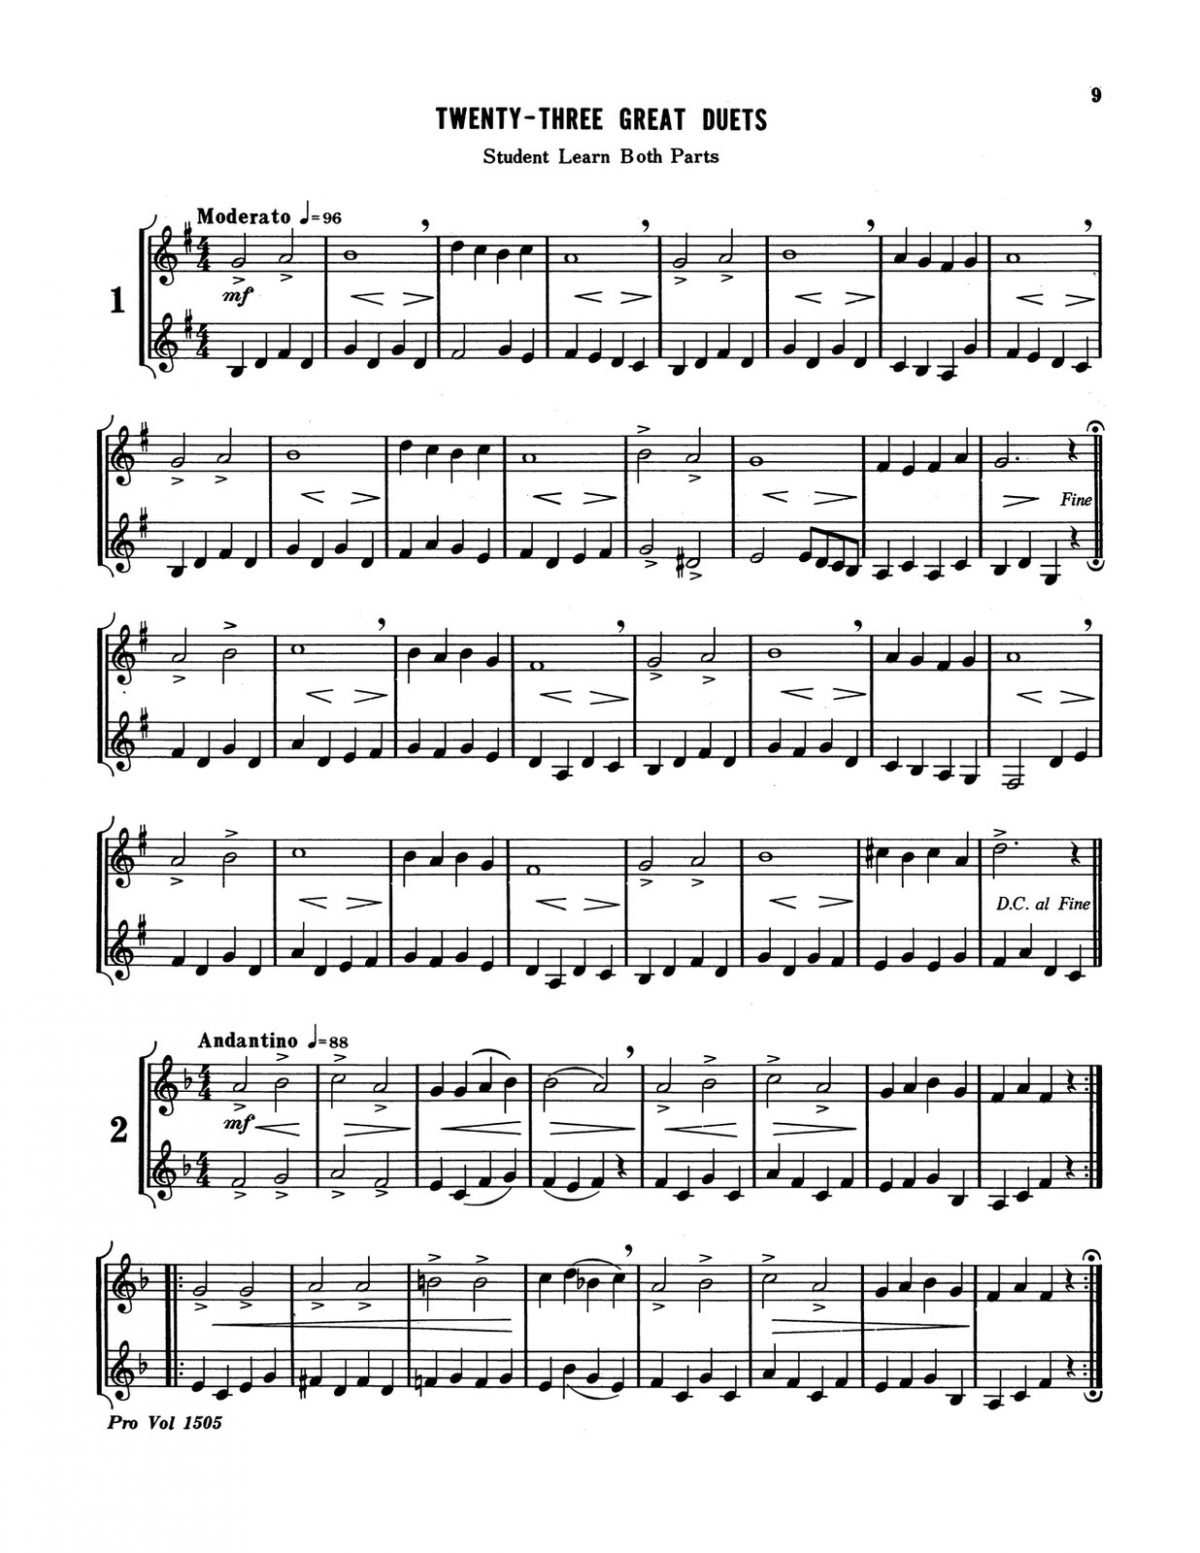 Little, Great Duets Level 1 Book A-p11